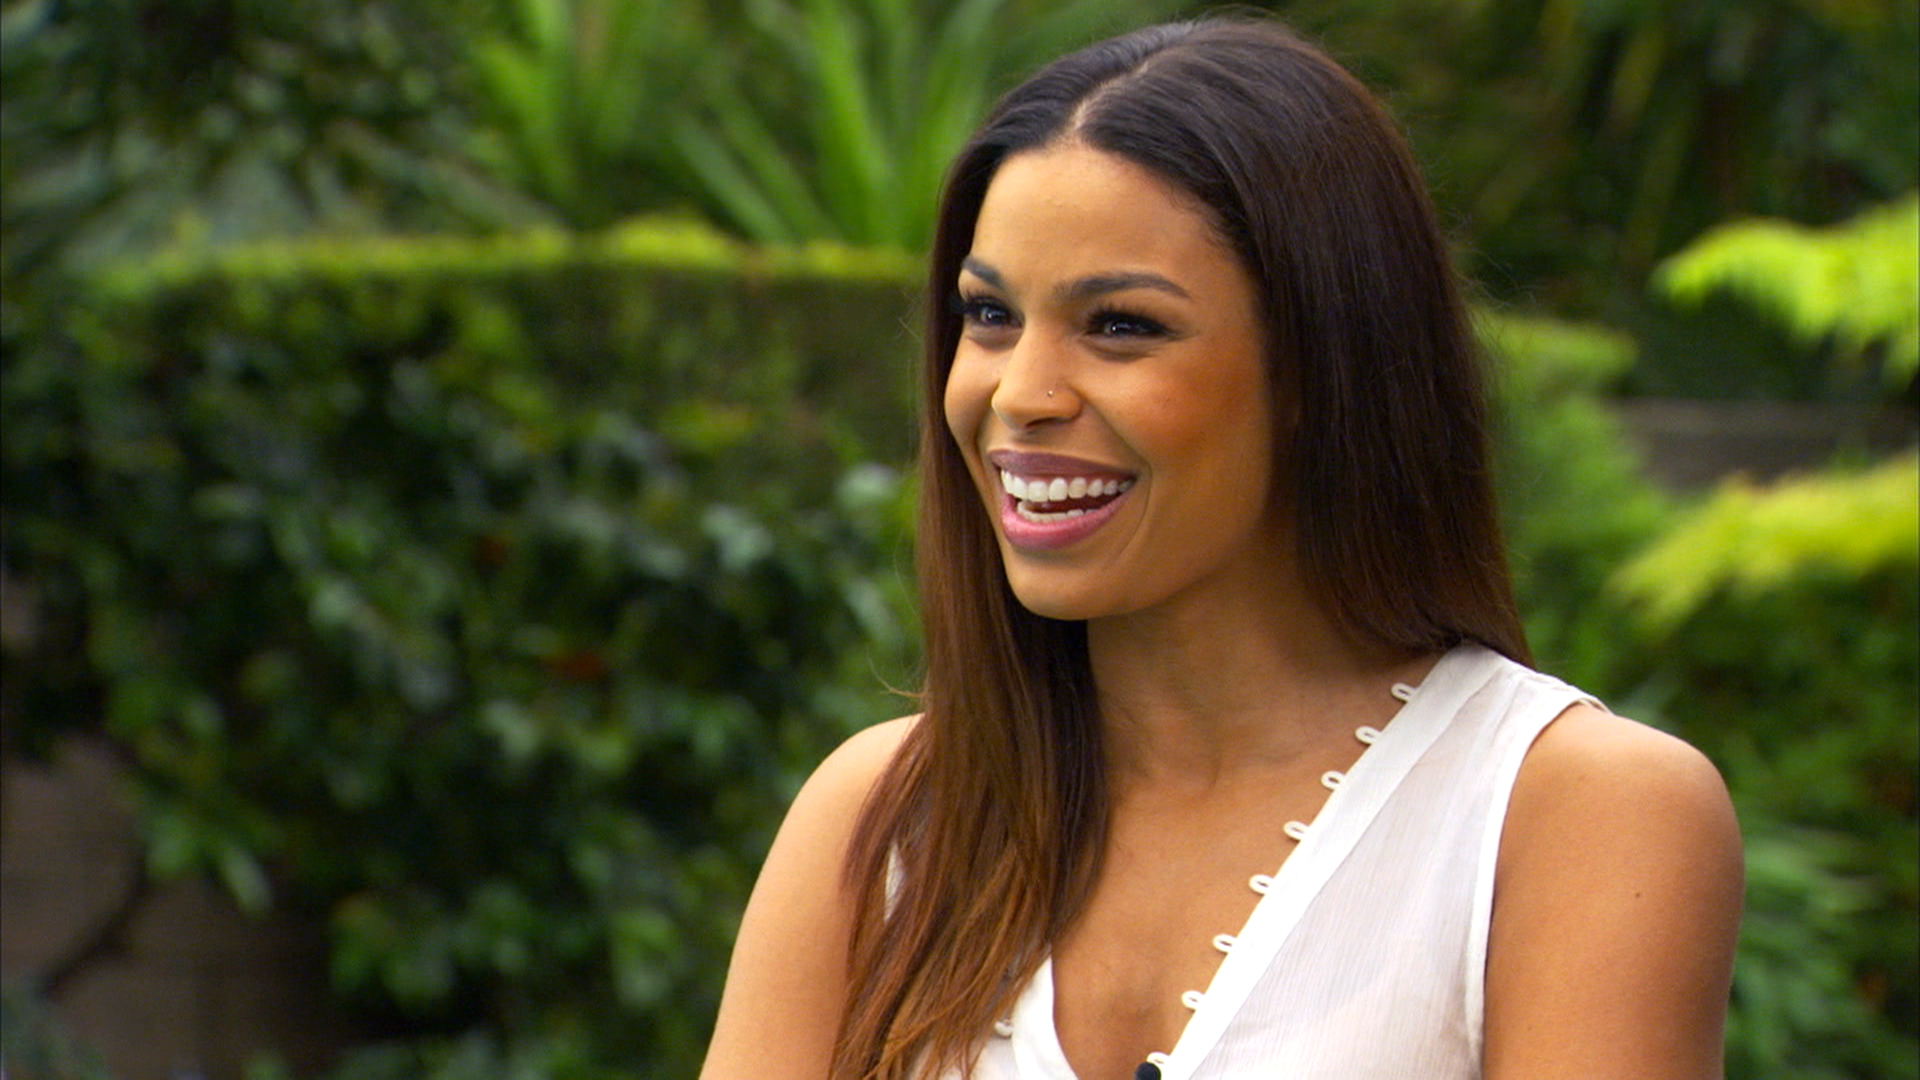 Jordin Sparks Reveals Her Weight, And 'it Feels Really Good